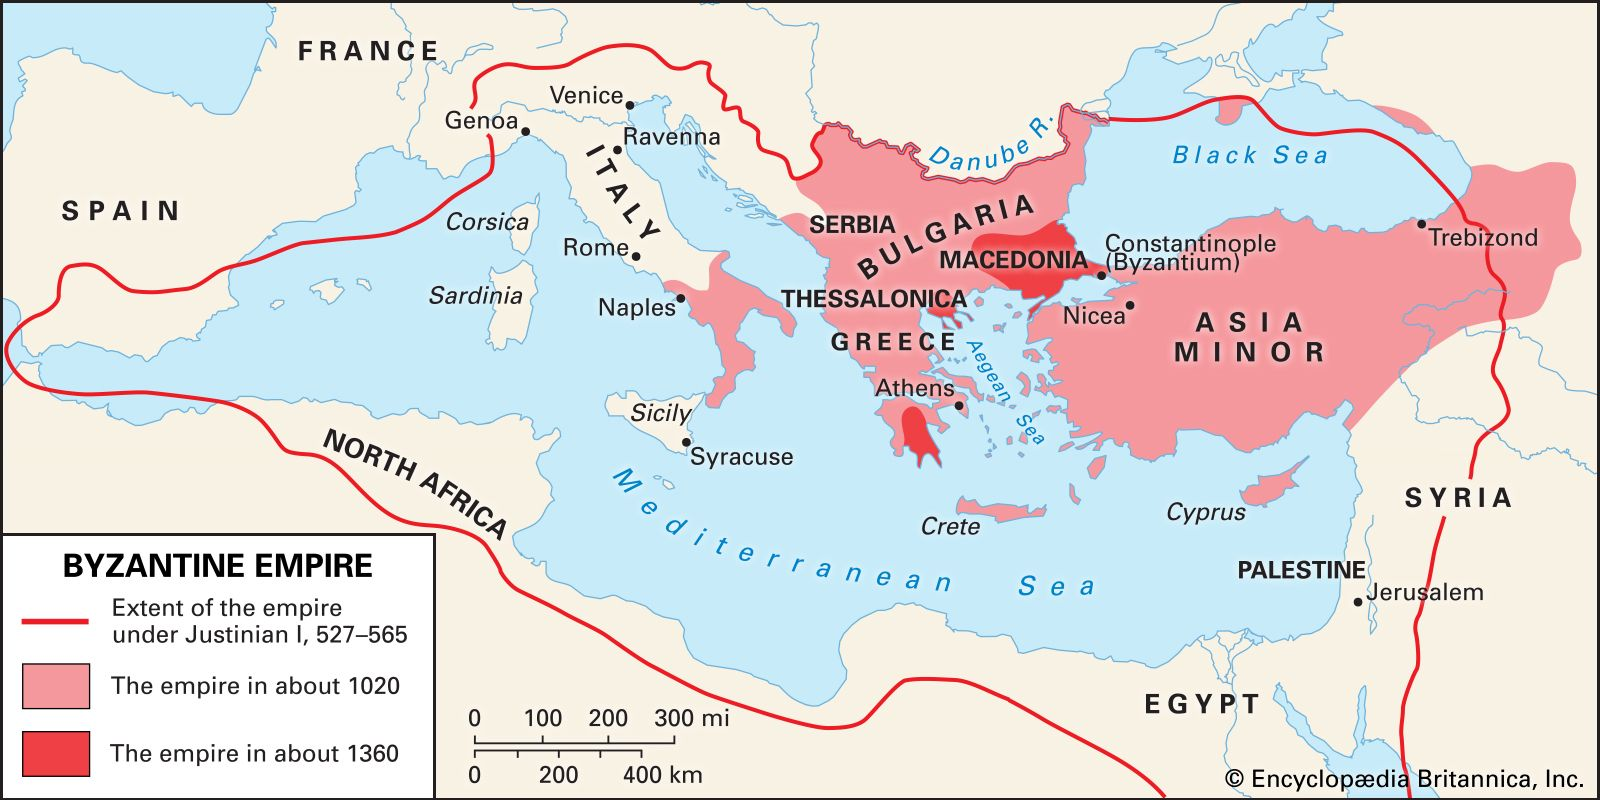 worksheet Byzantine Empire Map Worksheet the byzantine empire map of pinterest britannica online encyclopedia empire